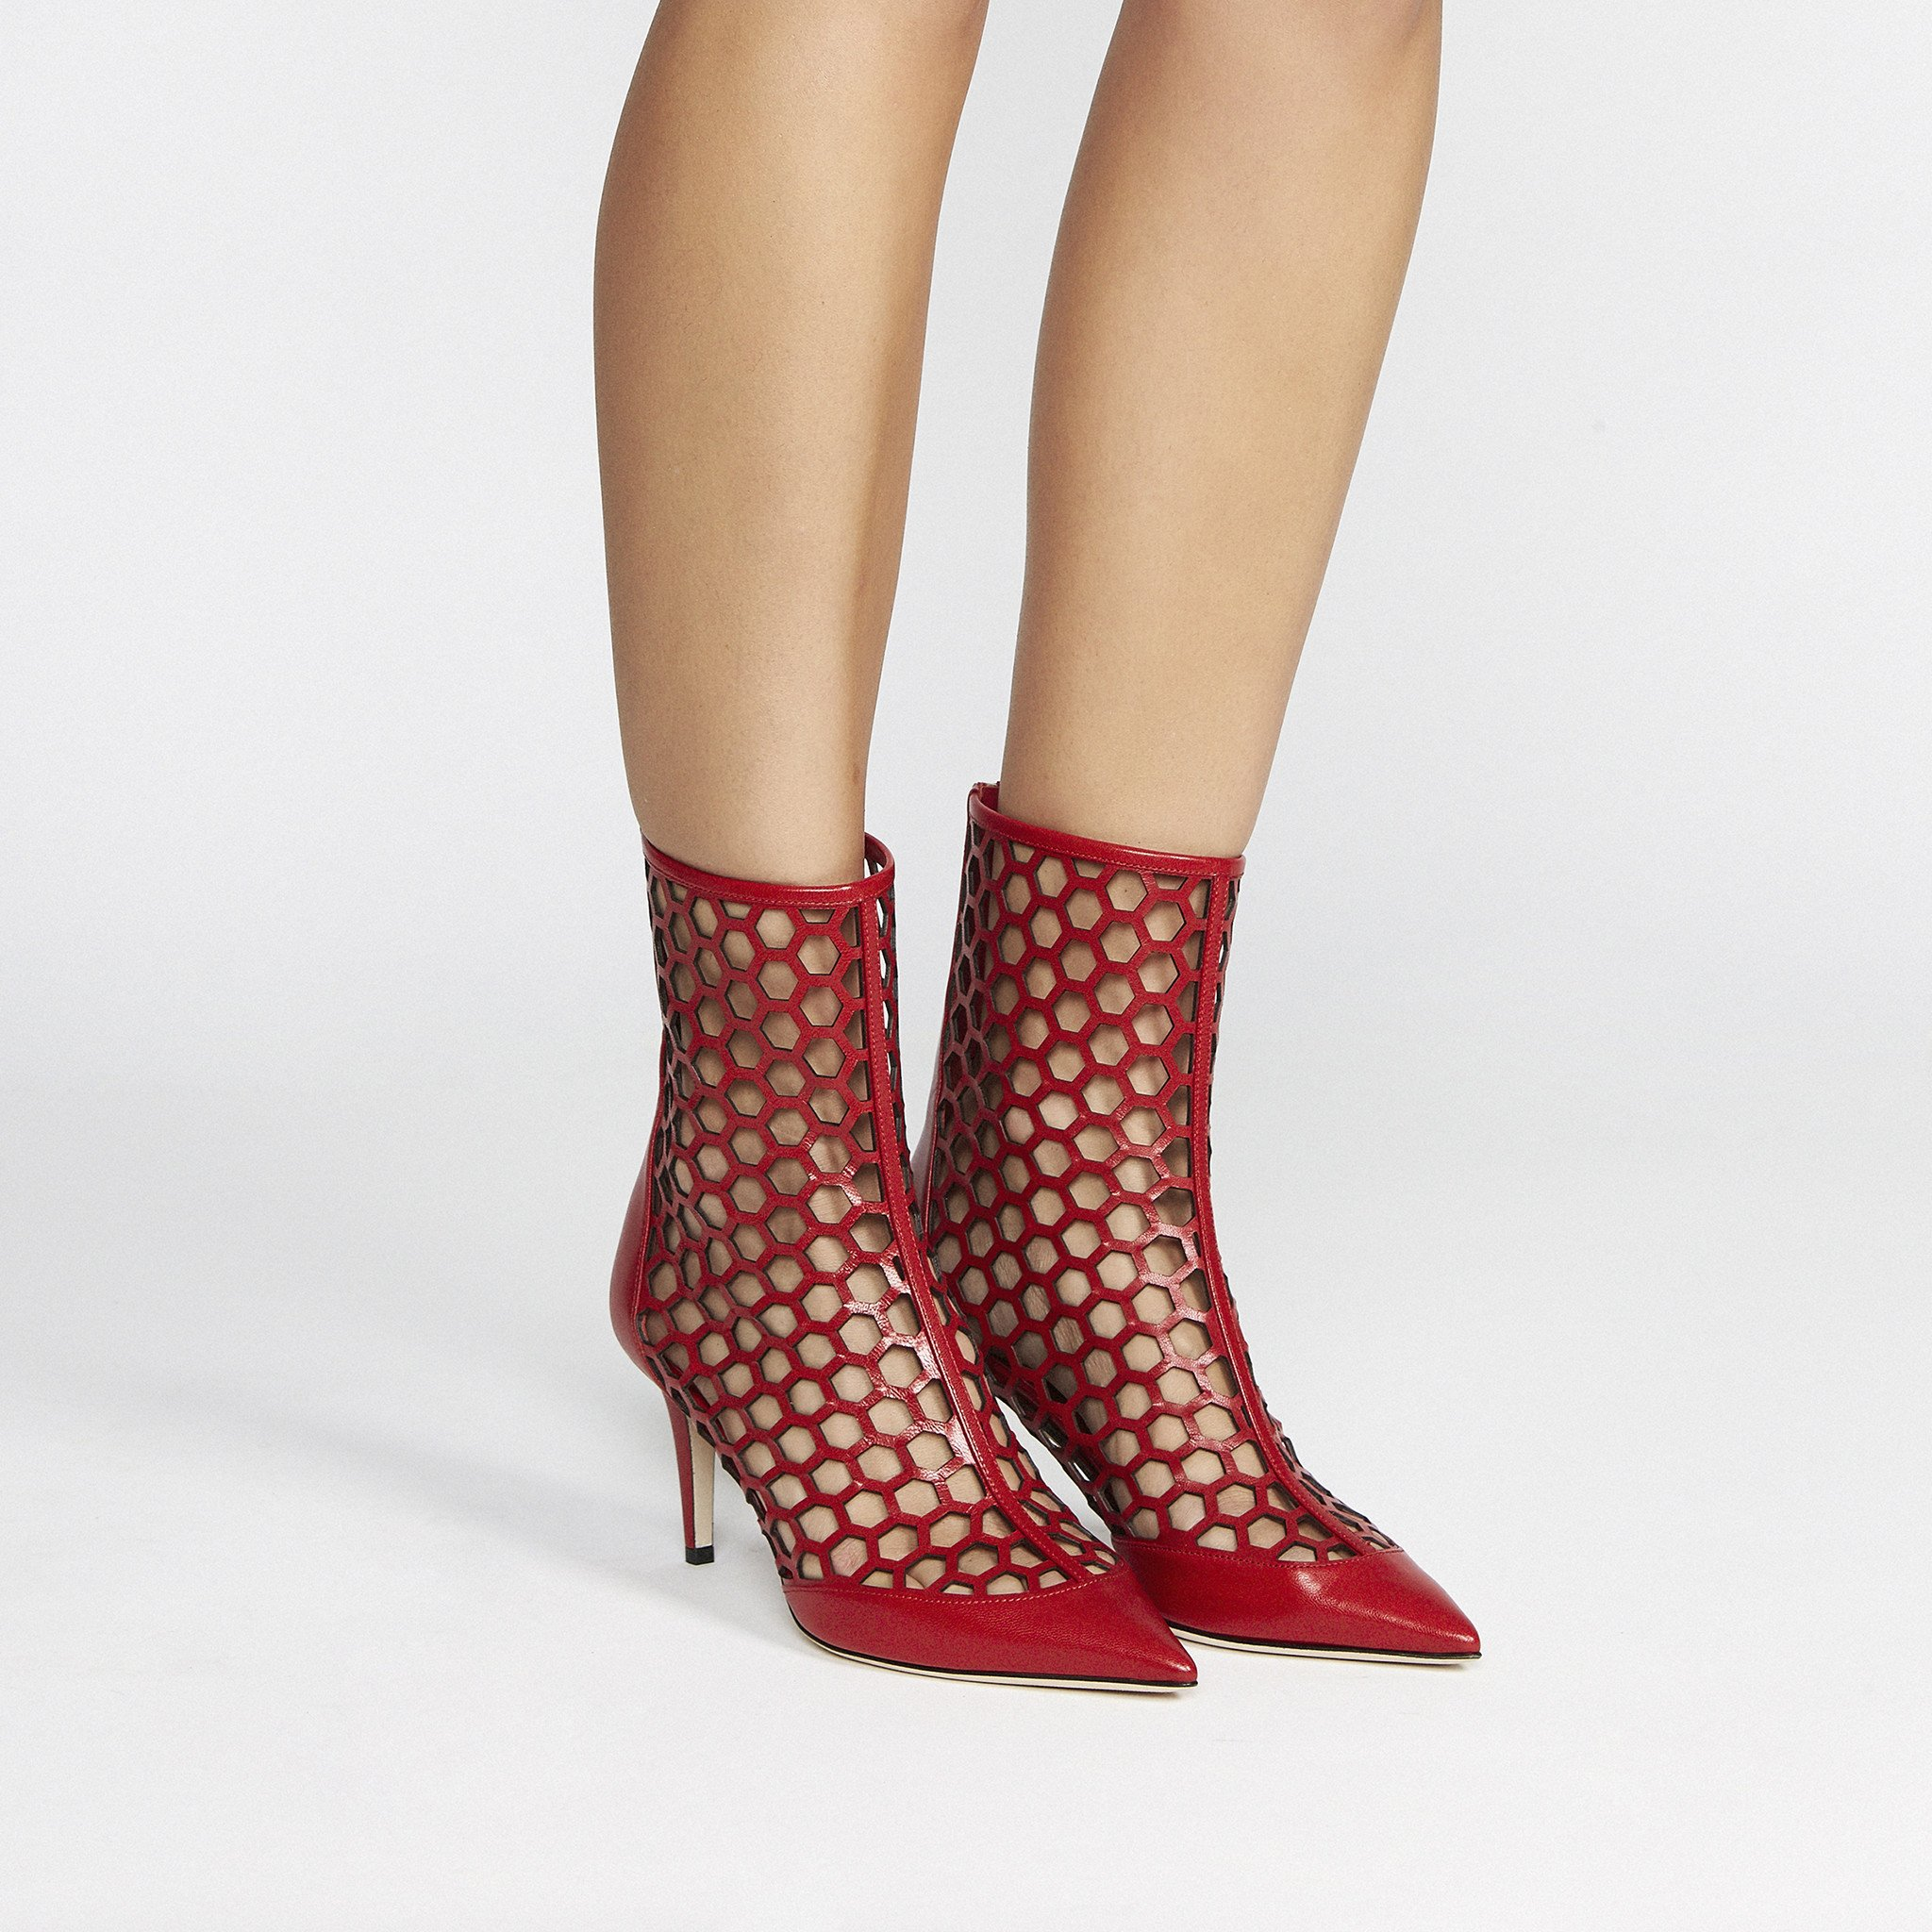 Tamara Mellon Queen Bee boots